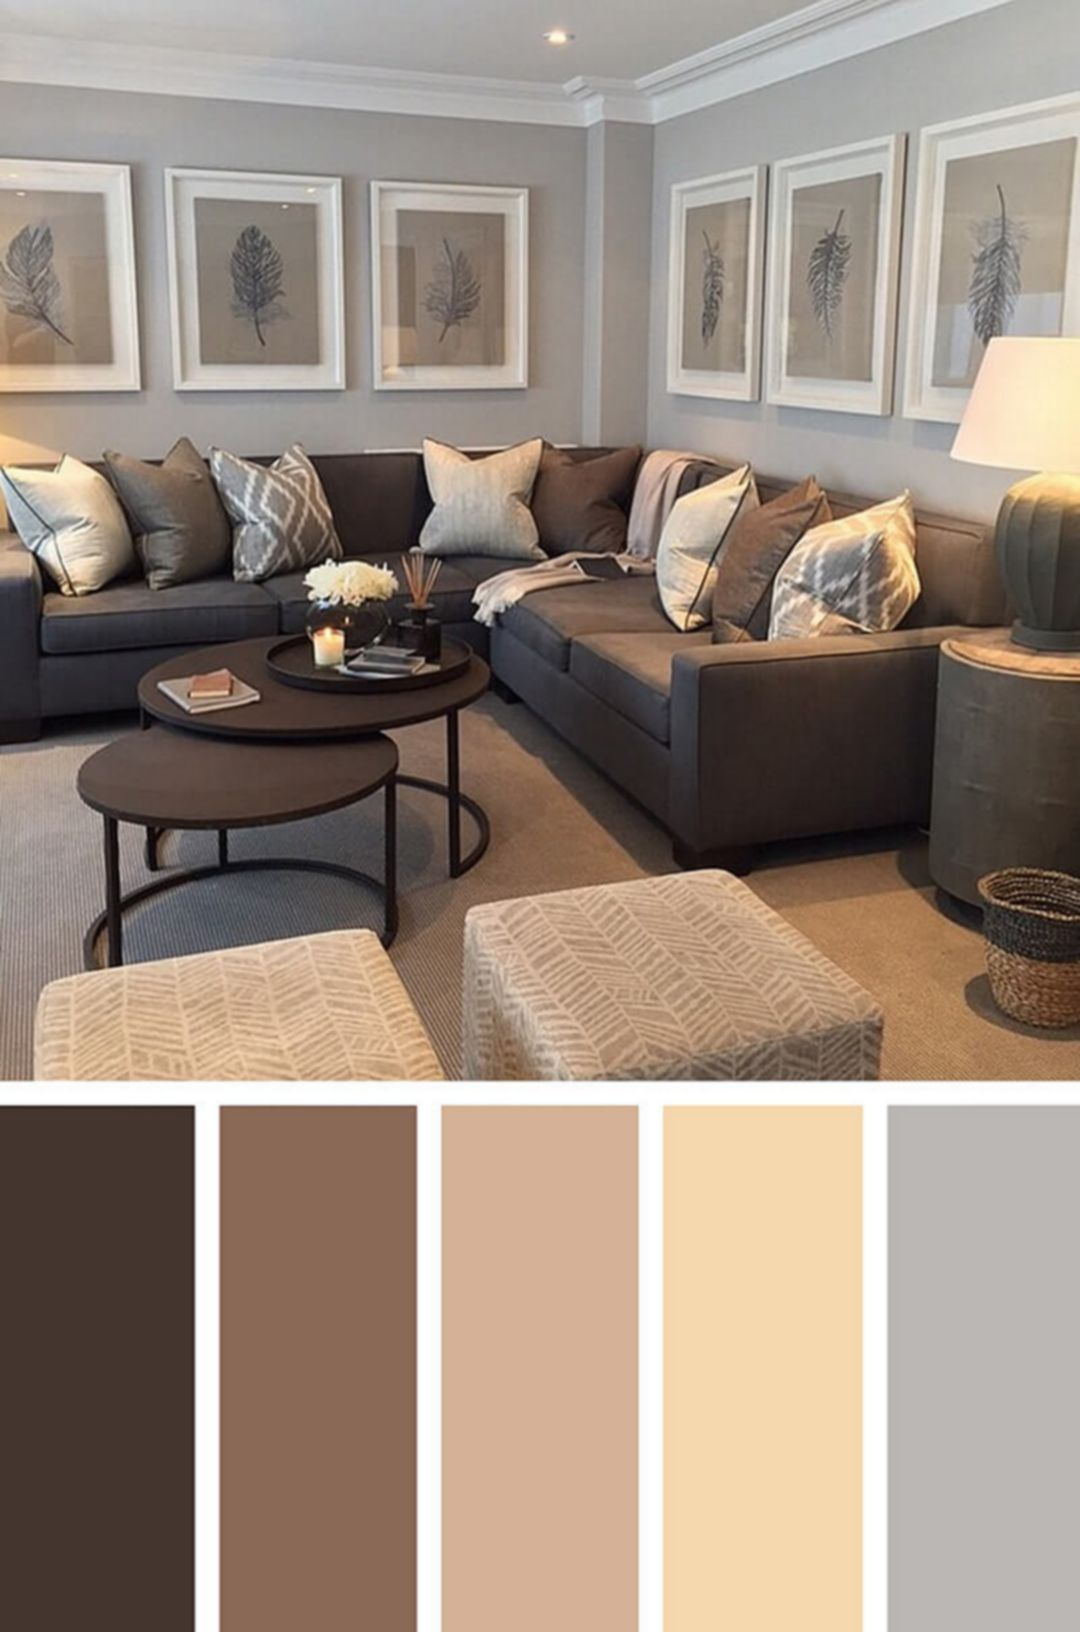 Küche interieur farbschemata  best color harmony ideas for living room looks more comfortable